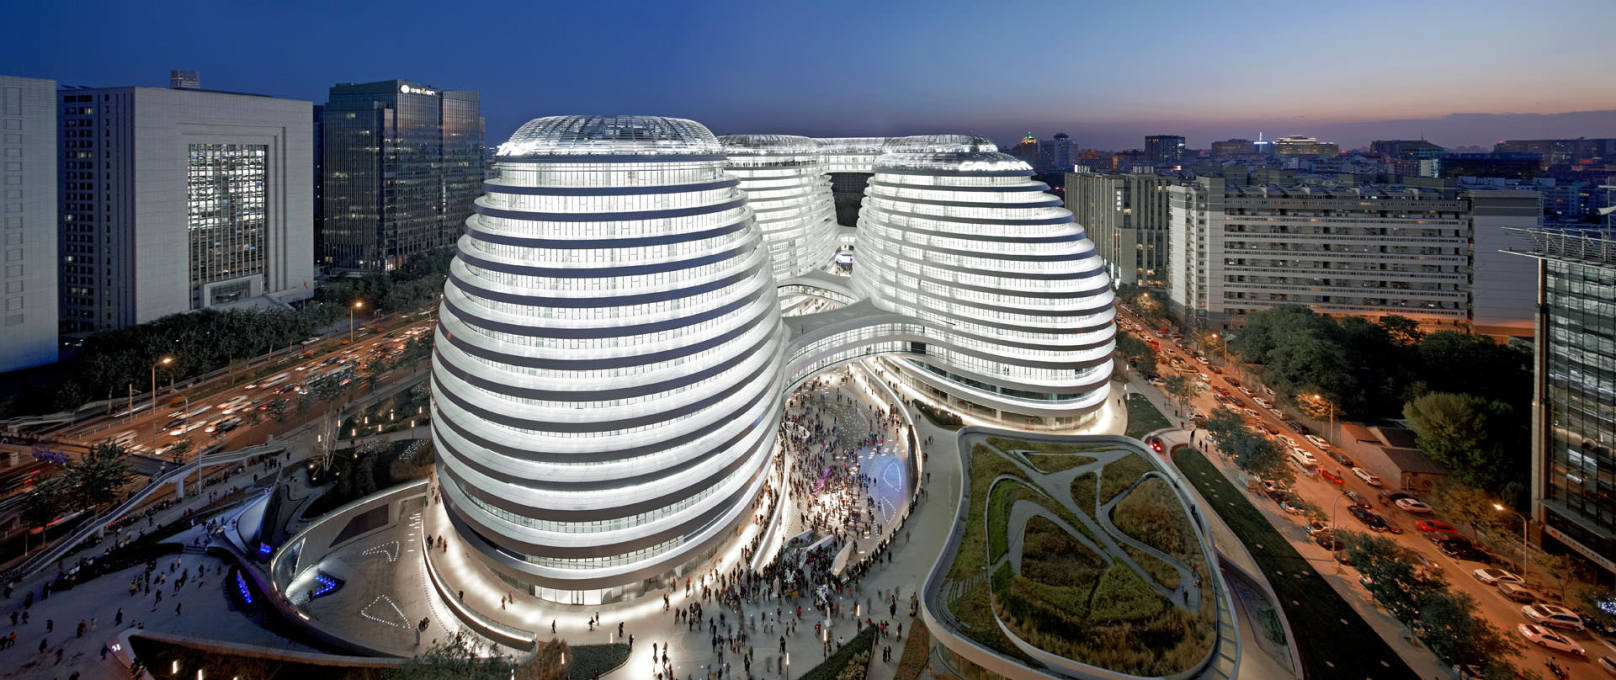 The lights are on but no one's home. The Galaxy Soho looking more CGI than... (Photo: Hufton + Crow)